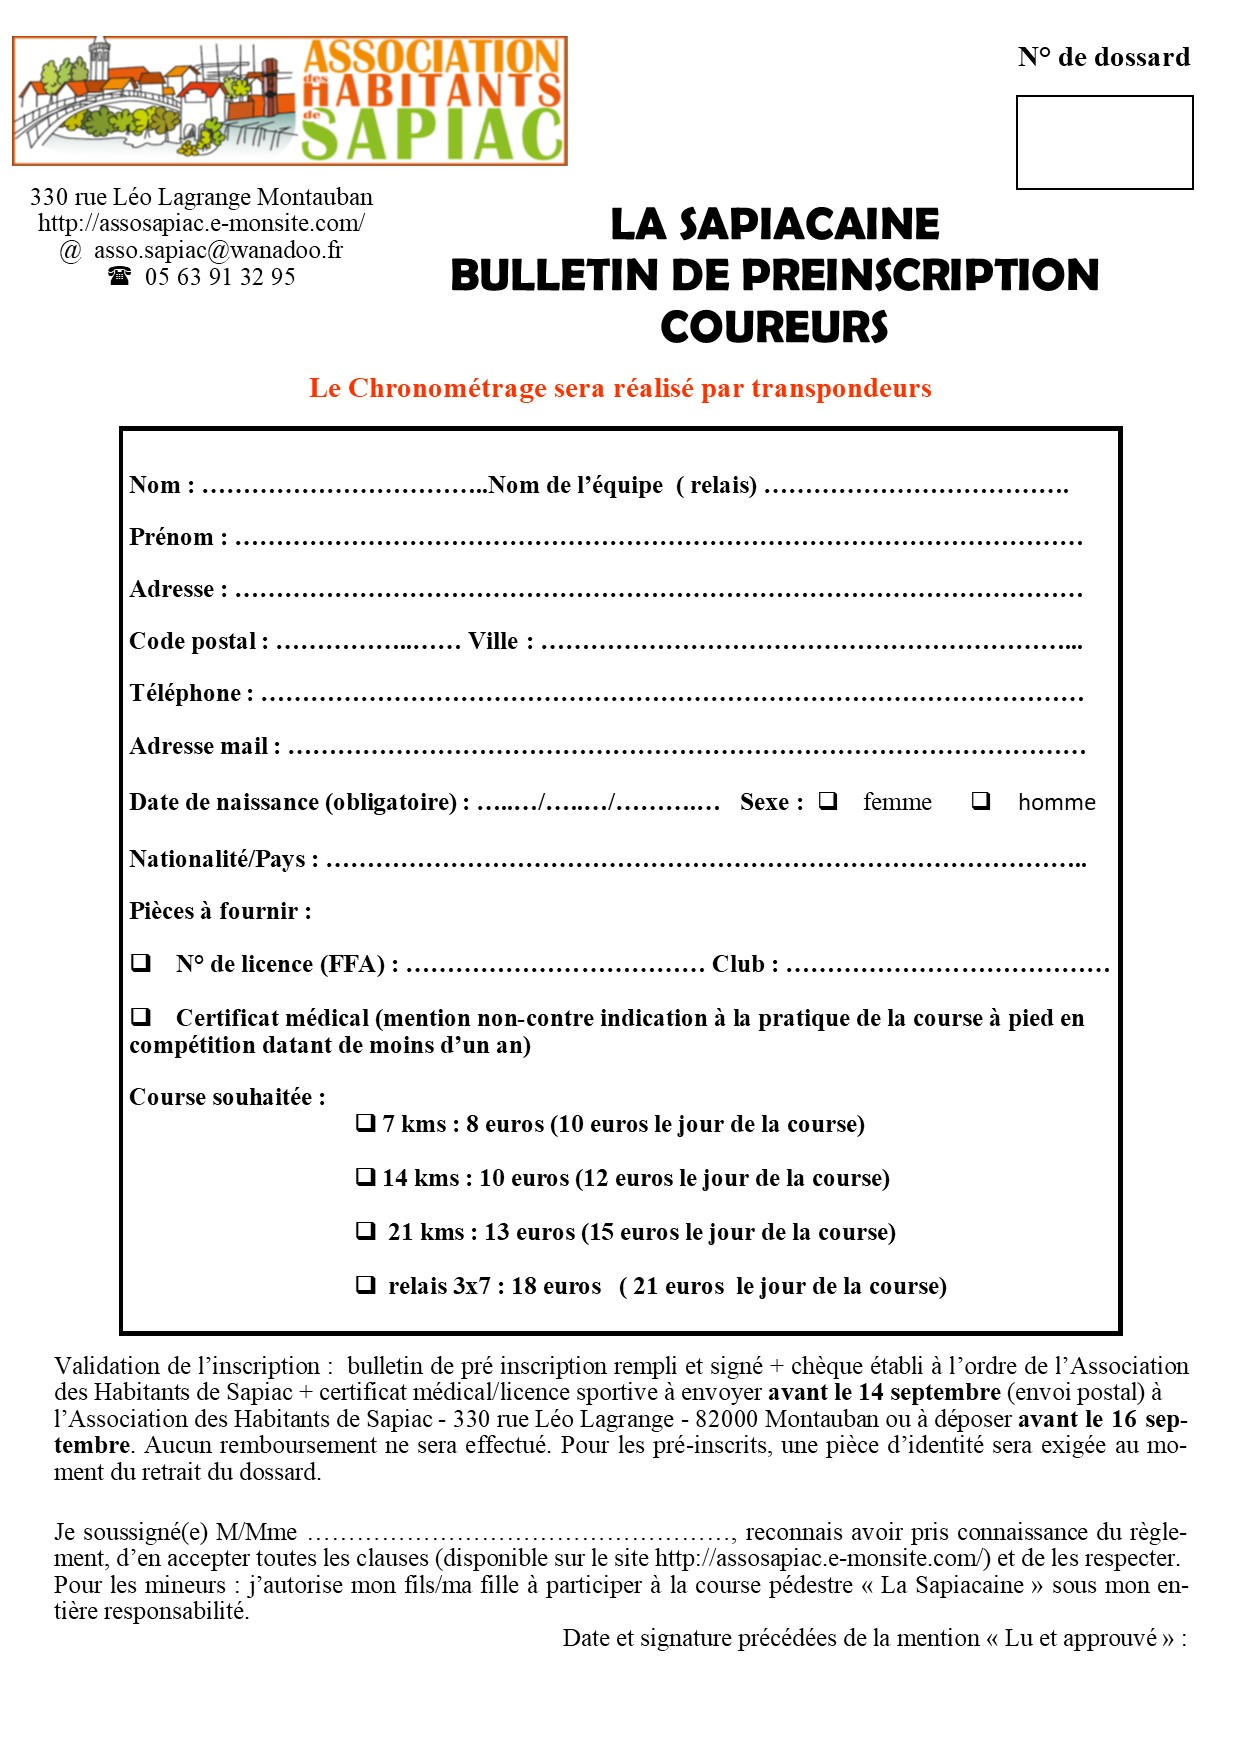 Bulletin preinscription adultes